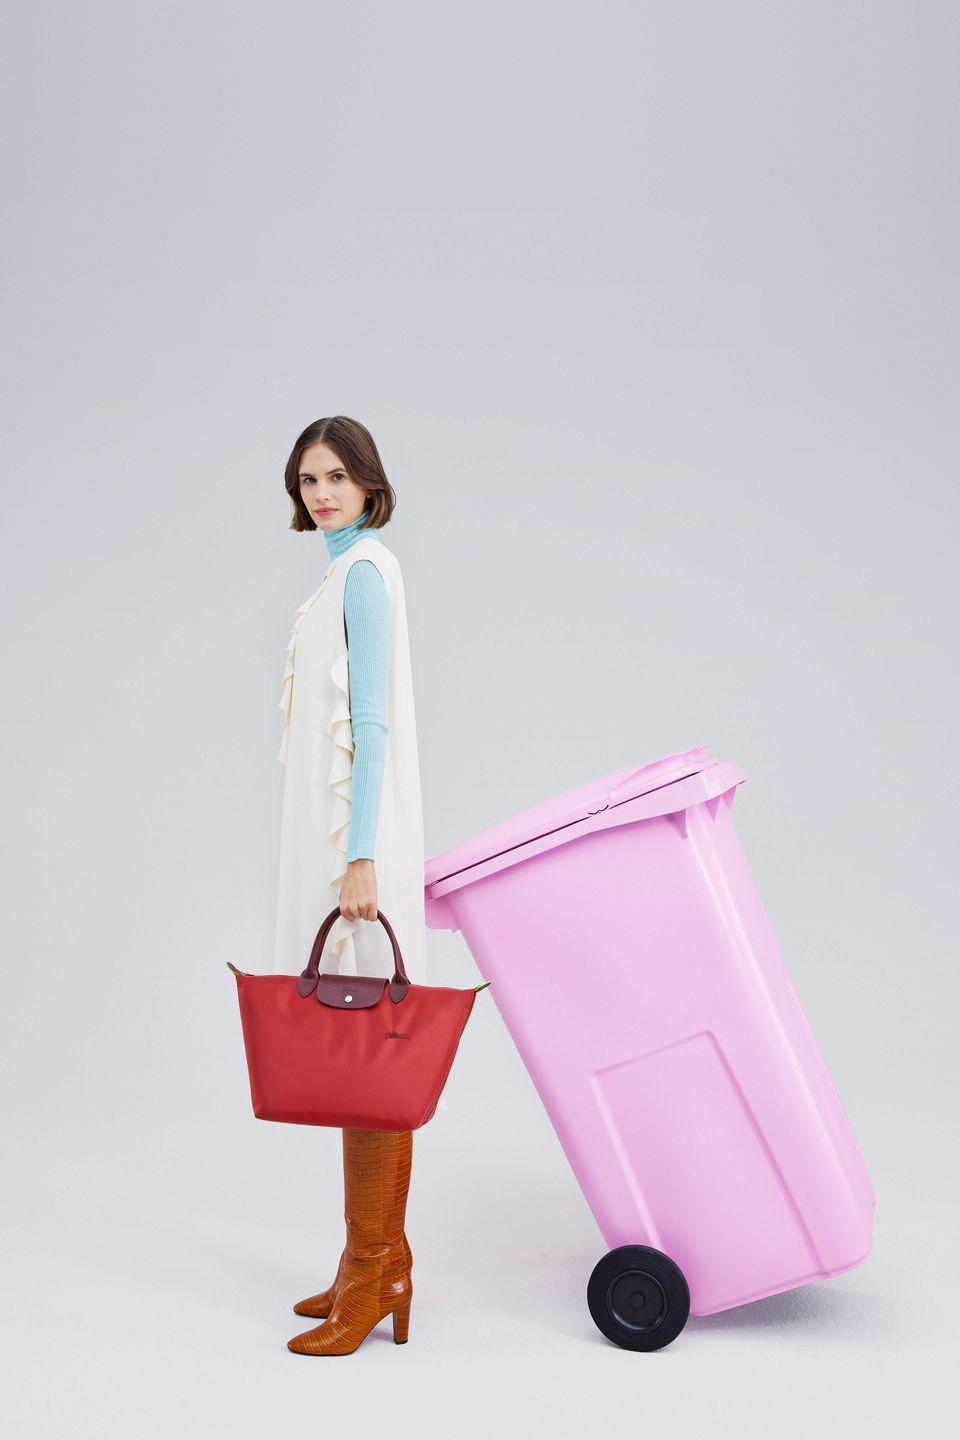 """<p><strong>Who: </strong>Longchamp</p><p><strong>What: </strong>Le Pliage campaign and introduction of Le Pliage Green</p><p><strong>Where:</strong> Available on <a href=""""https://go.redirectingat.com?id=74968X1596630&url=https%3A%2F%2Fwww.longchamp.com%2F&sref=https%3A%2F%2Fwww.elle.com%2Ffashion%2Fshopping%2Fg36905733%2Fthe-launch-julys-hottest-fashion-drops%2F"""" rel=""""nofollow noopener"""" target=""""_blank"""" data-ylk=""""slk:longchamp.com"""" class=""""link rapid-noclick-resp"""">longchamp.com</a> and in Longchamp stores and retailers worldwide</p><p><strong>Why: </strong>Longchamp's Le Pliage bag has achieved a rare feat in the handbag category: household status. The iconic woven canvas tote is presented in the brand's latest tongue-in-cheek campaign, along with the new Le Pliage Green style. The name highlights the continuation of Longchamp's commitment to sustainable production, with all Le Pliage Green bags made from recycled nylon. Longchamp is committed to producing the entire Le Pliage line with this material by 2022. Same bag, better for the environment. What's not to love? </p><p><a class=""""link rapid-noclick-resp"""" href=""""https://go.redirectingat.com?id=74968X1596630&url=https%3A%2F%2Fwww.longchamp.com%2Fus%2Fen%2Flongchamp-lepliage-green%2F&sref=https%3A%2F%2Fwww.elle.com%2Ffashion%2Fshopping%2Fg36905733%2Fthe-launch-julys-hottest-fashion-drops%2F"""" rel=""""nofollow noopener"""" target=""""_blank"""" data-ylk=""""slk:SHOP NOW"""">SHOP NOW</a></p>"""